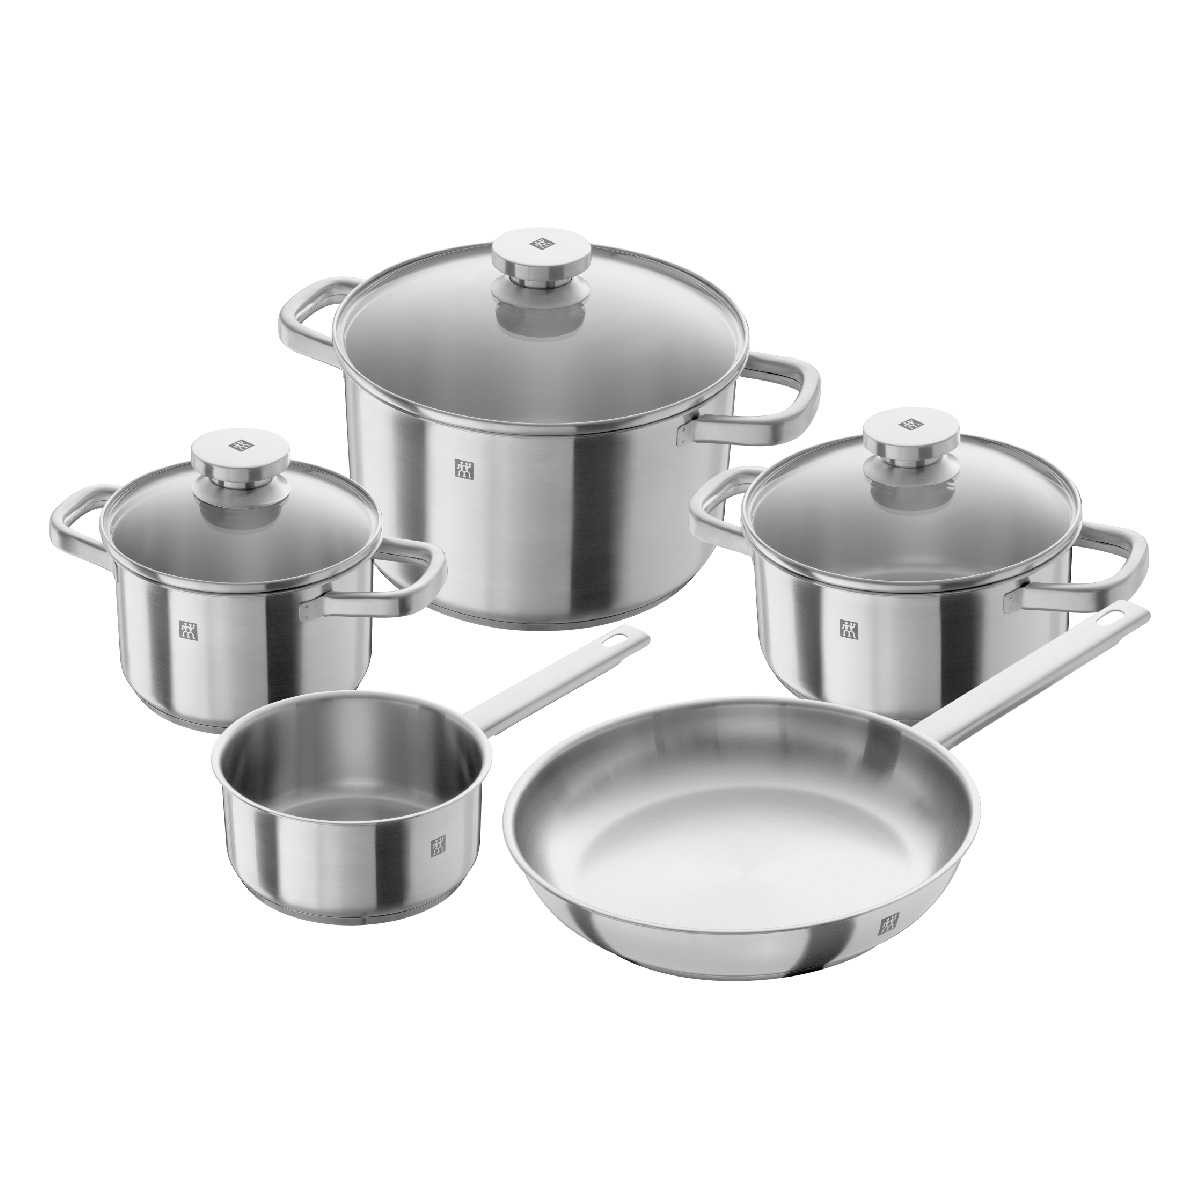 ZWILLING - Joy cookware set - 5pcs